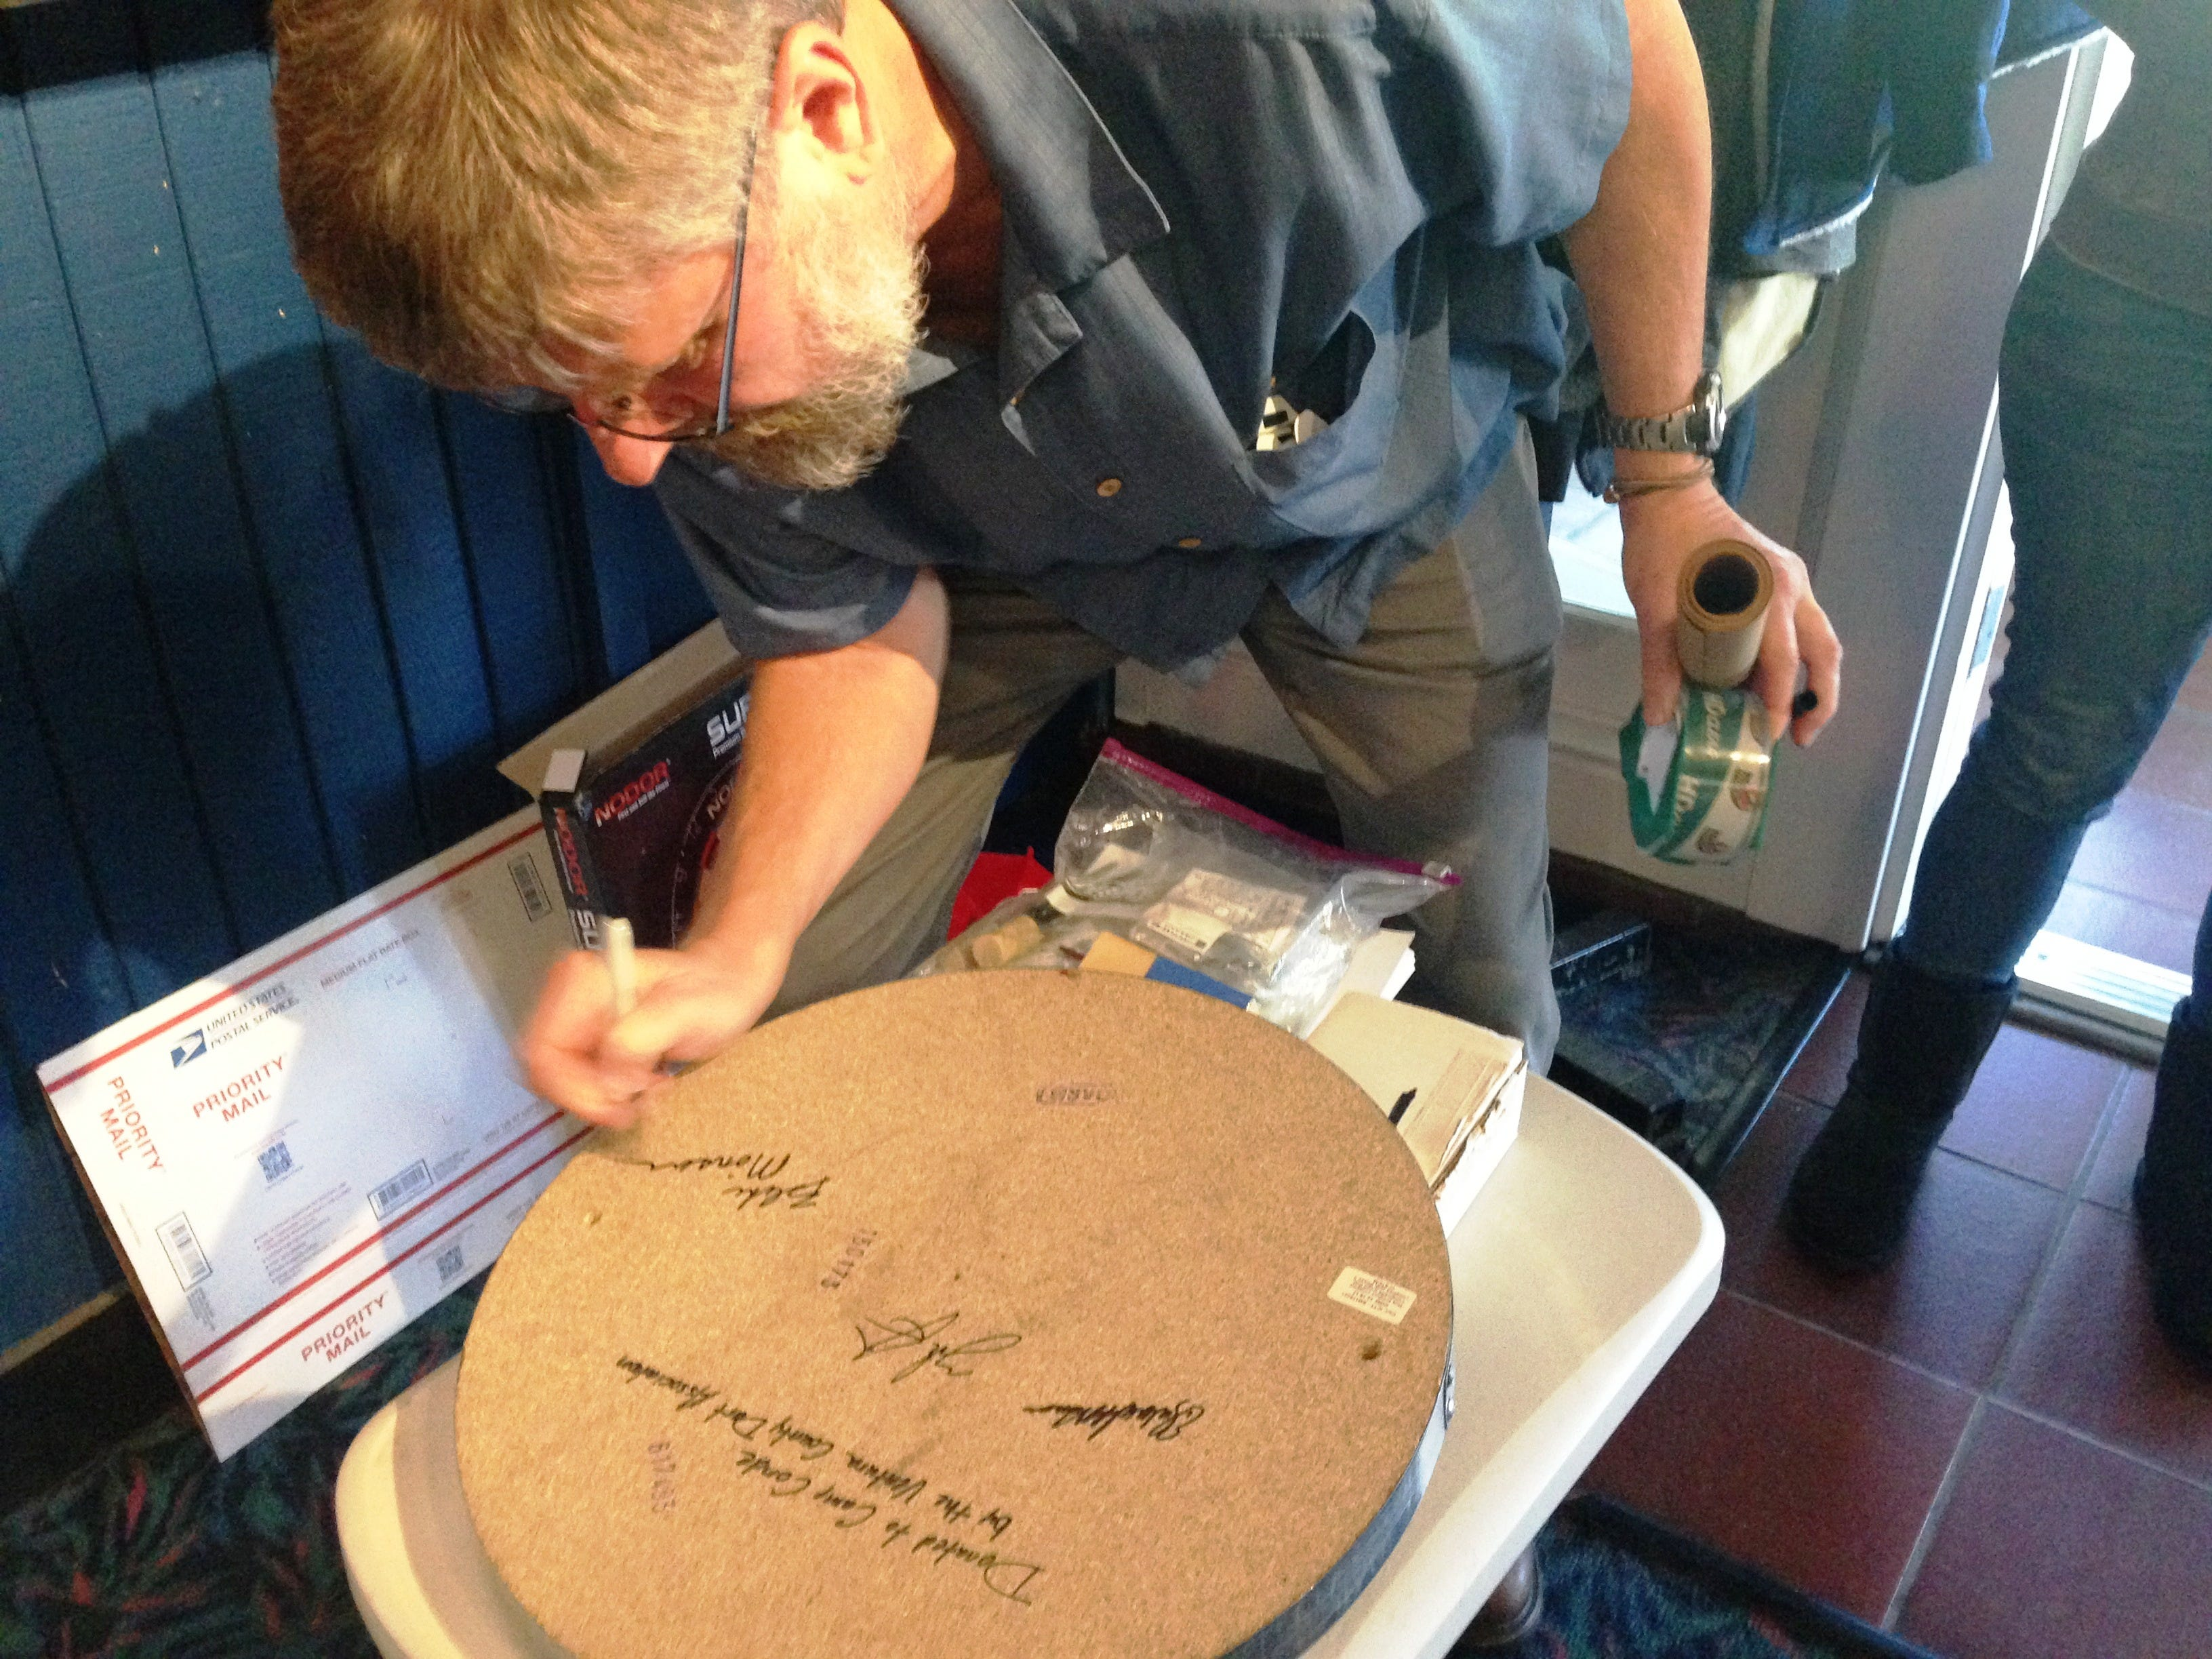 Blake Monson, webmaster of the Ventura County Dart Association, signs a tournament-quality dartboard that was donated by association members to deployed troops at Camp Conde in Afghanistan.